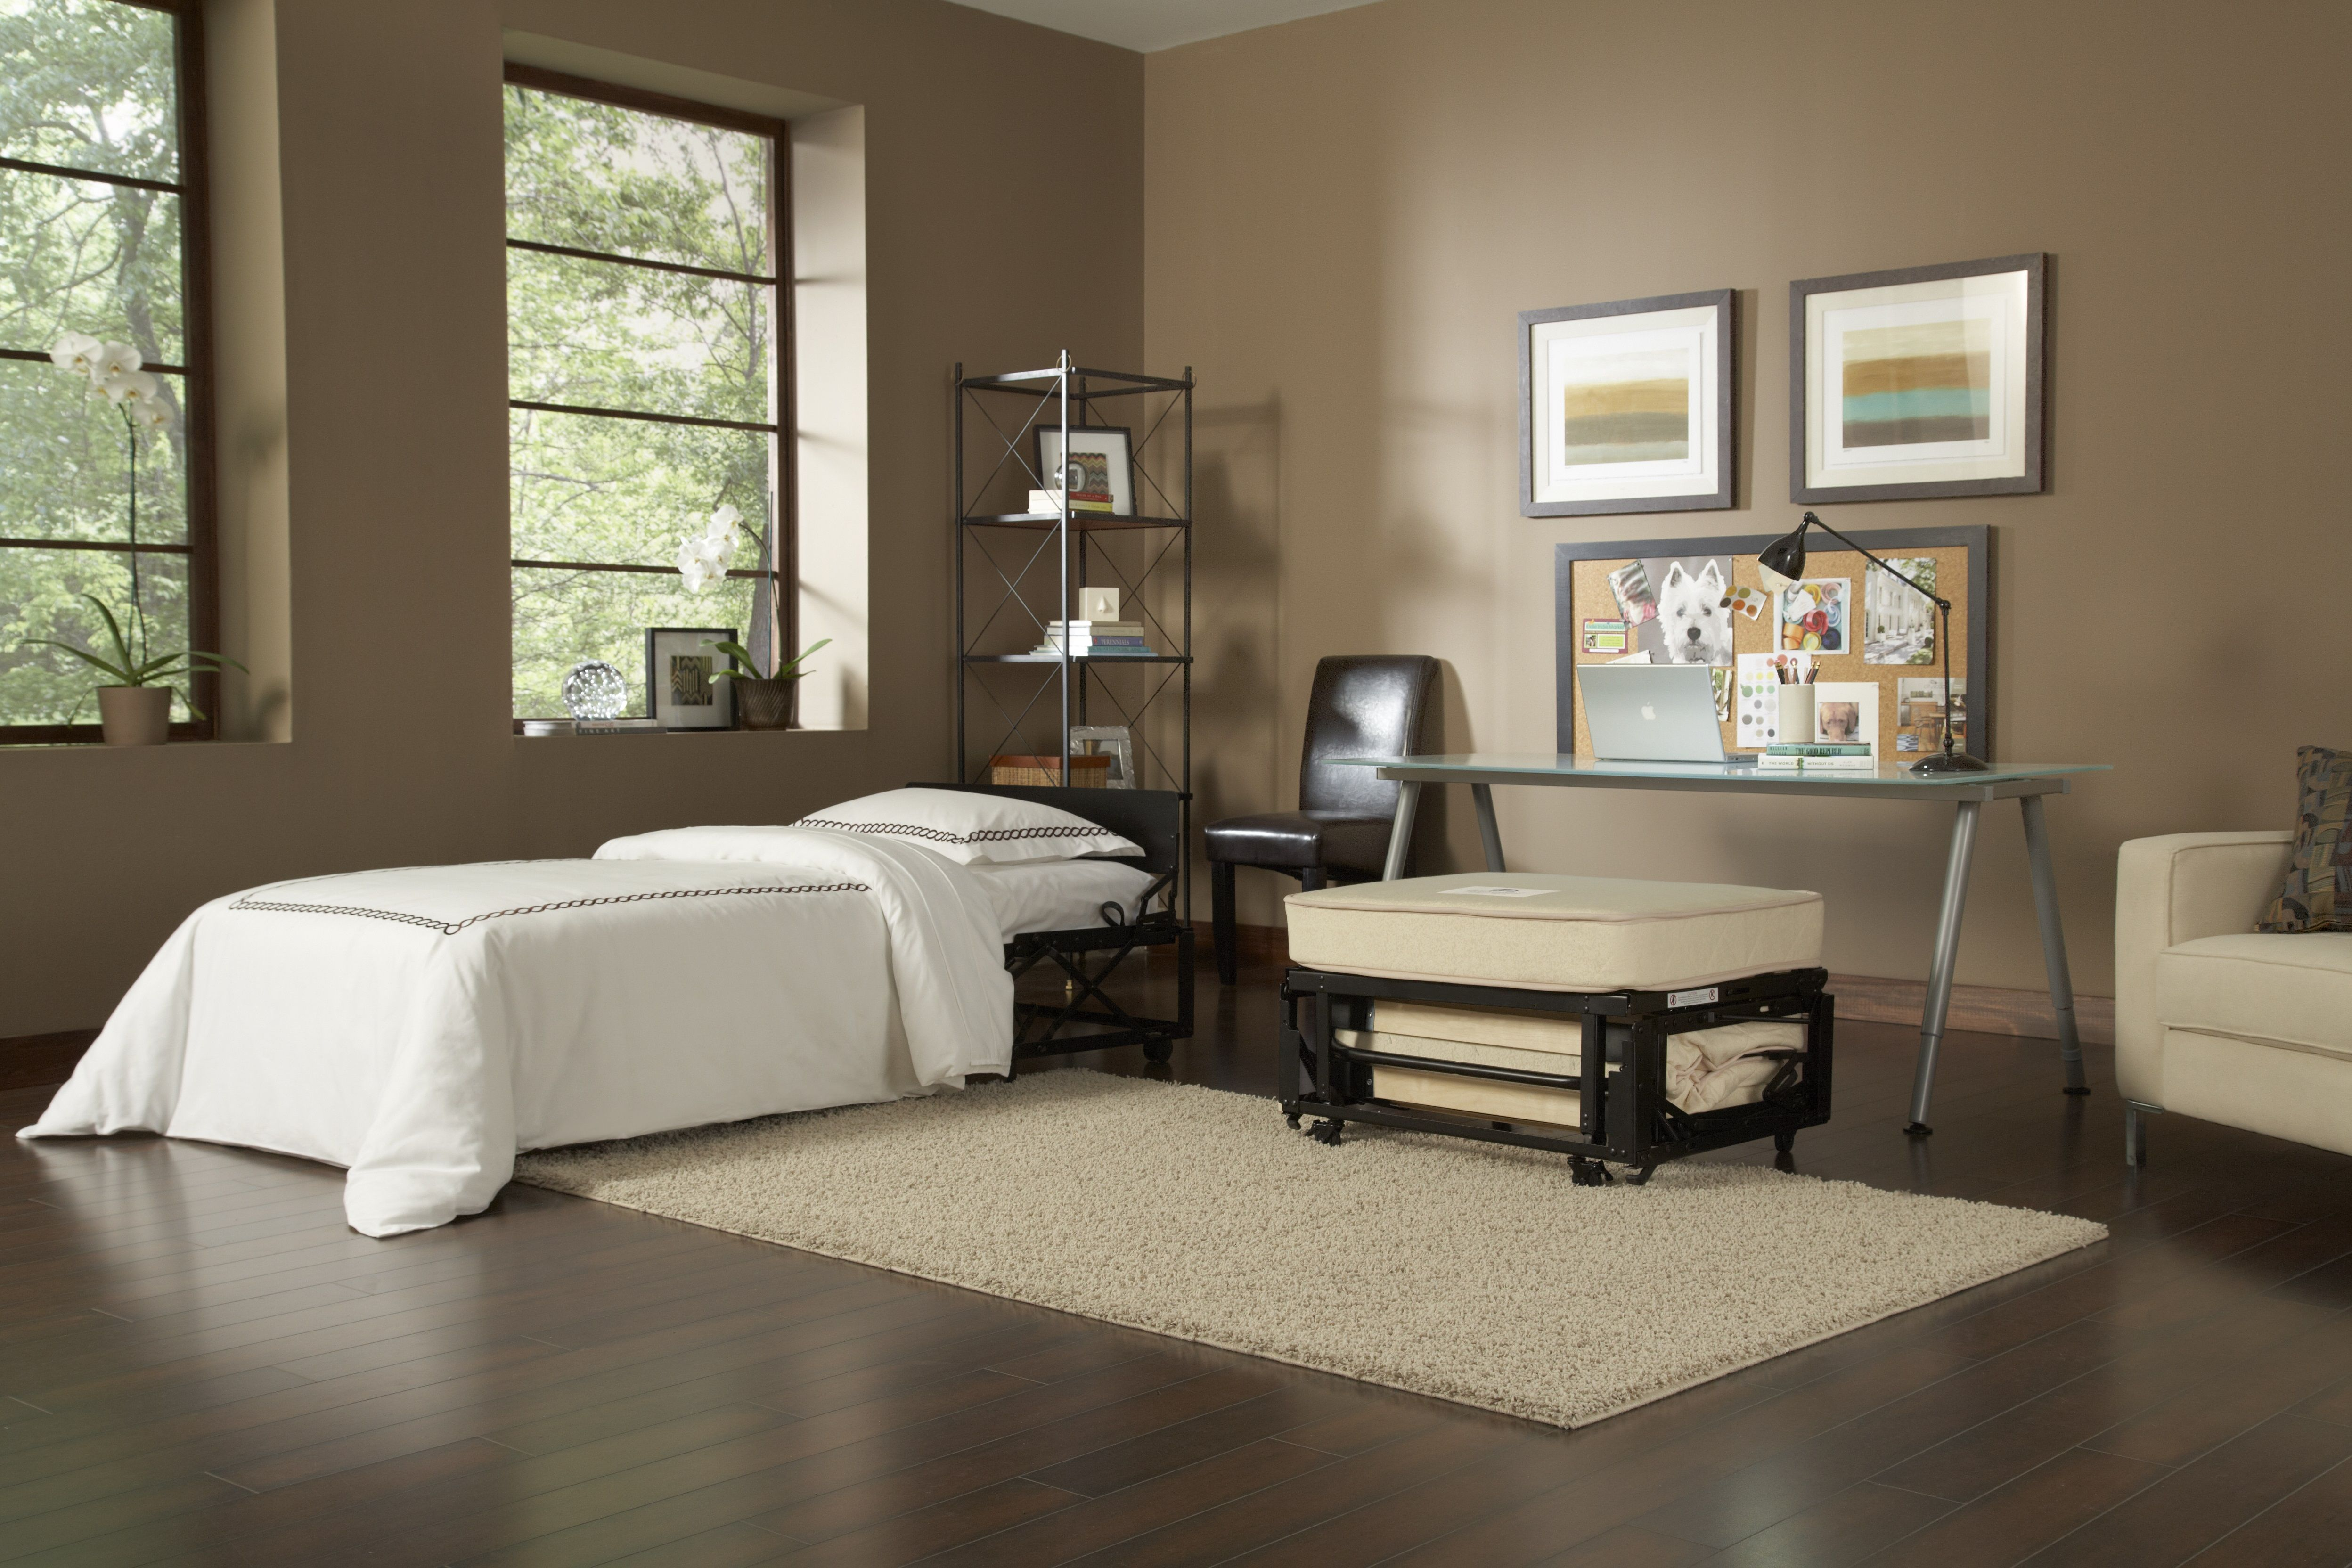 By Eliminating The Standard Bed And By Adding Two Castro Convertible  Ottomans, One Can Transform